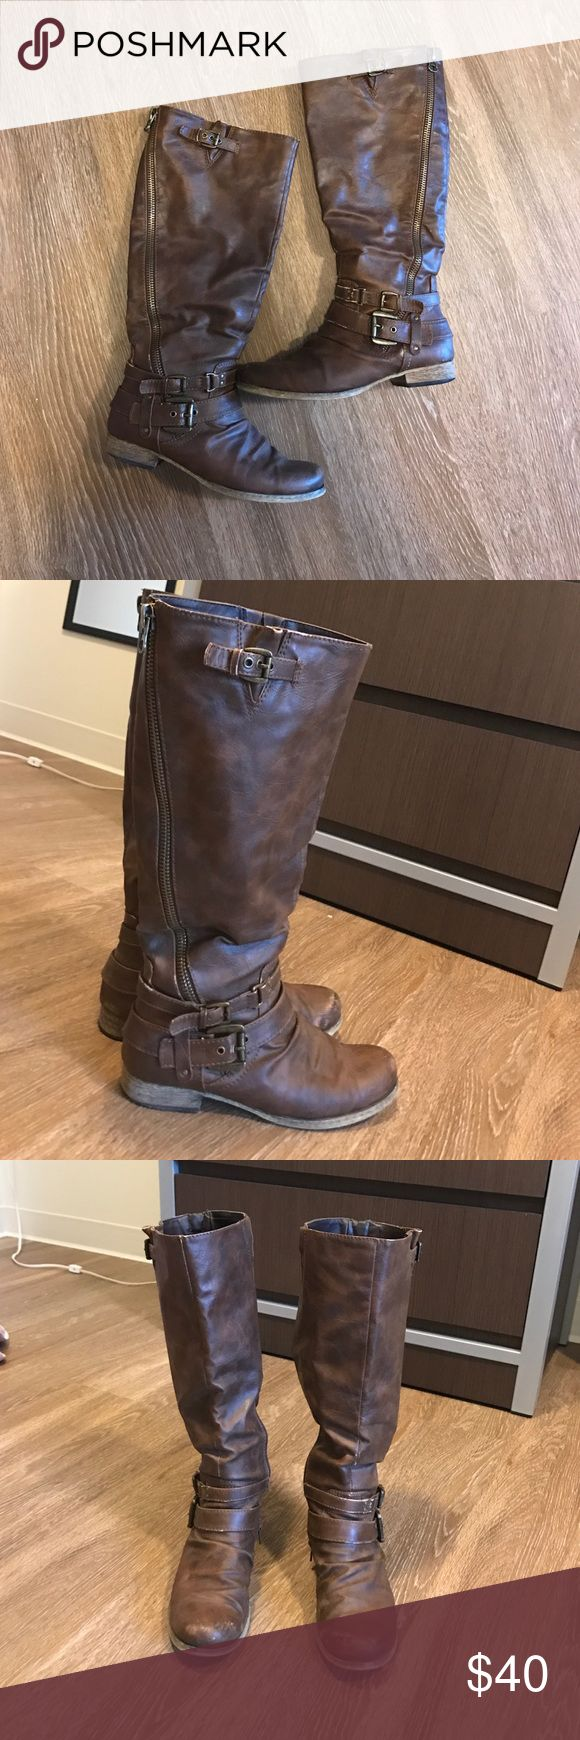 tall carlos santana boots do have some scuffs (as pictured) as they are real leather. gives them a more authentic look, hardly noticeable when looking at the overall boot Carlos Santana Shoes Heeled Boots